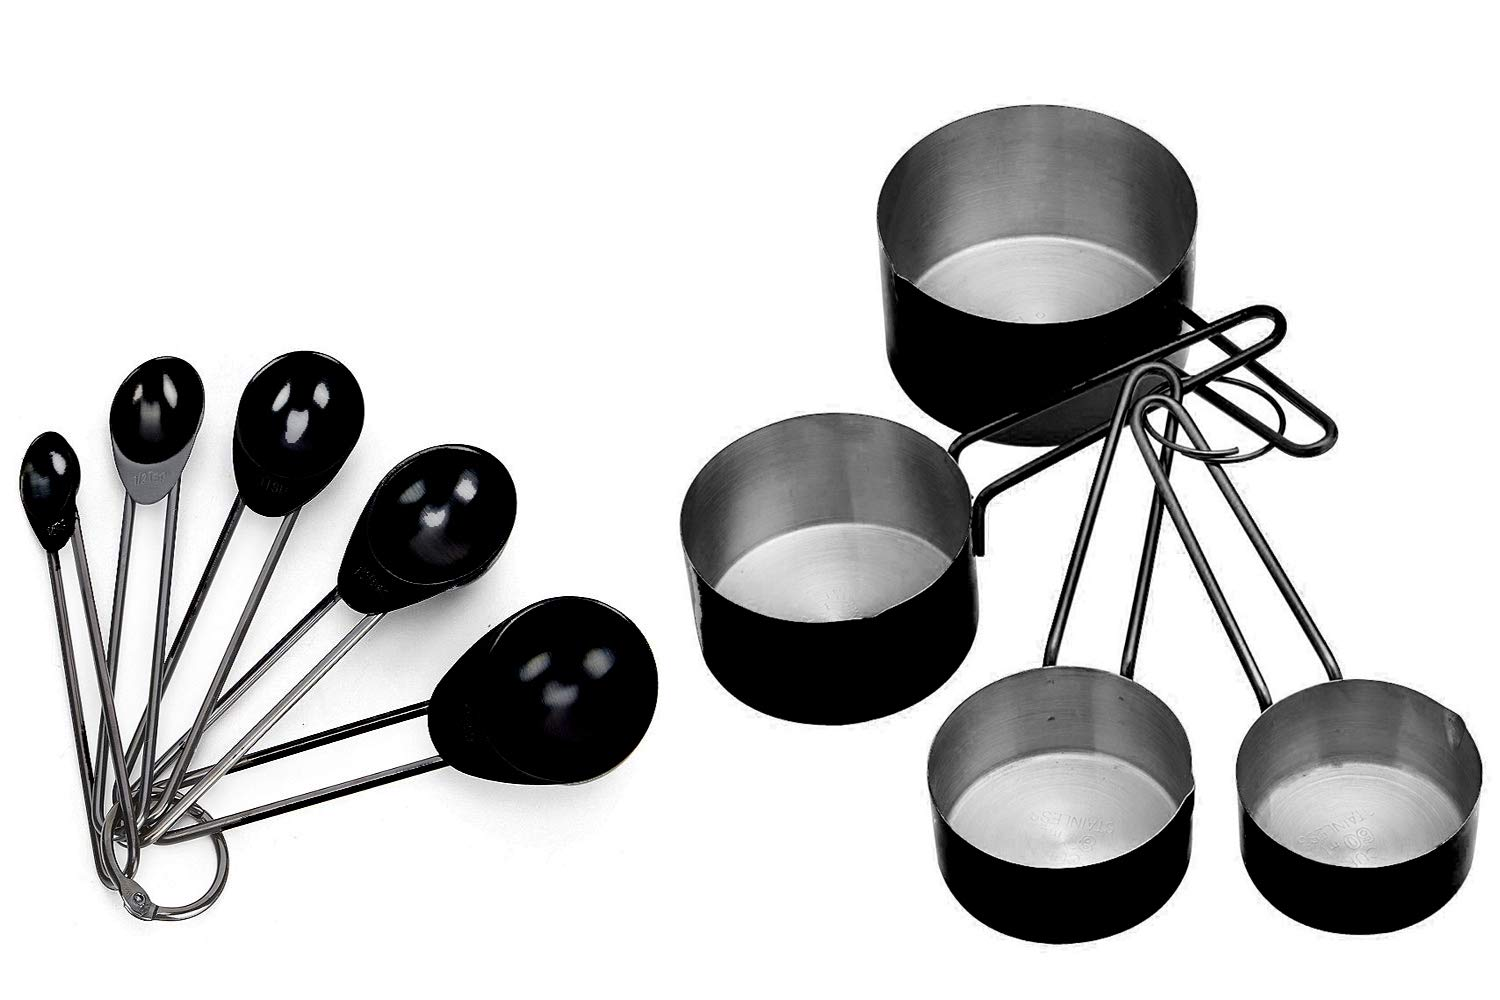 Buy king international stainless steel measuring cups and spoons useful engraved measurements cooking measuring cups and spoons with ring black 8 pcs set